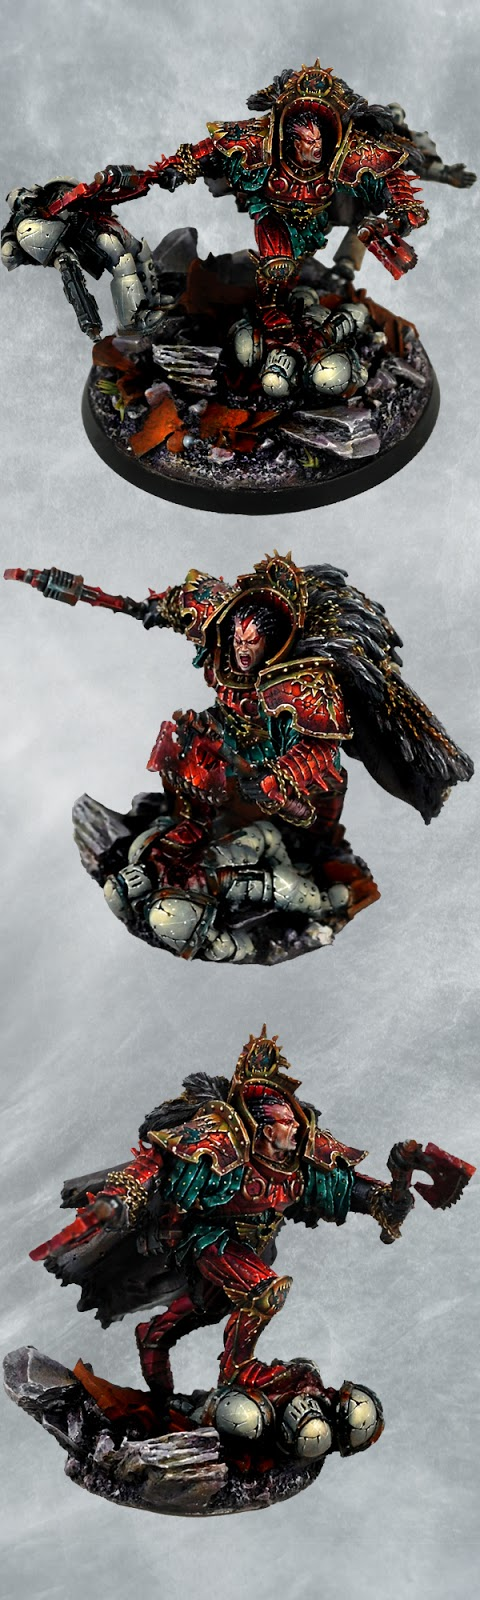 Angron, World Eaters Warlord by Bohun